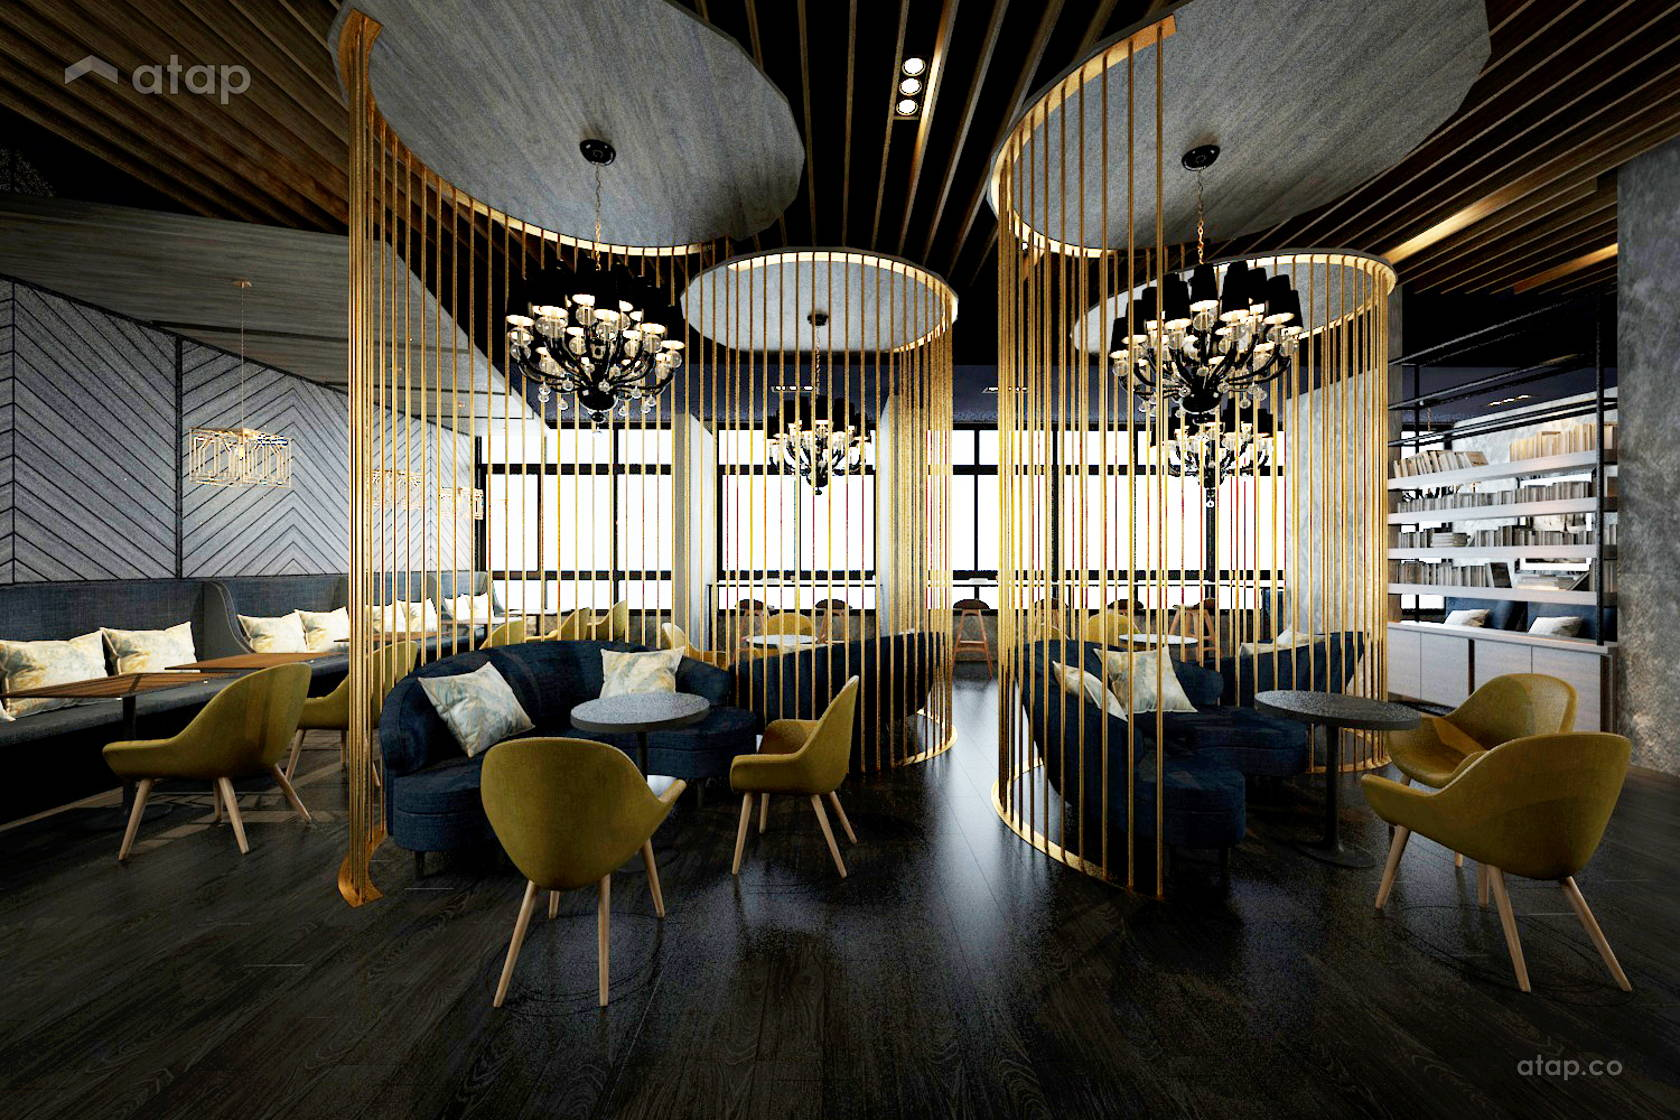 Sky Lounge Cafe architectural & interior design renovation ideas ...